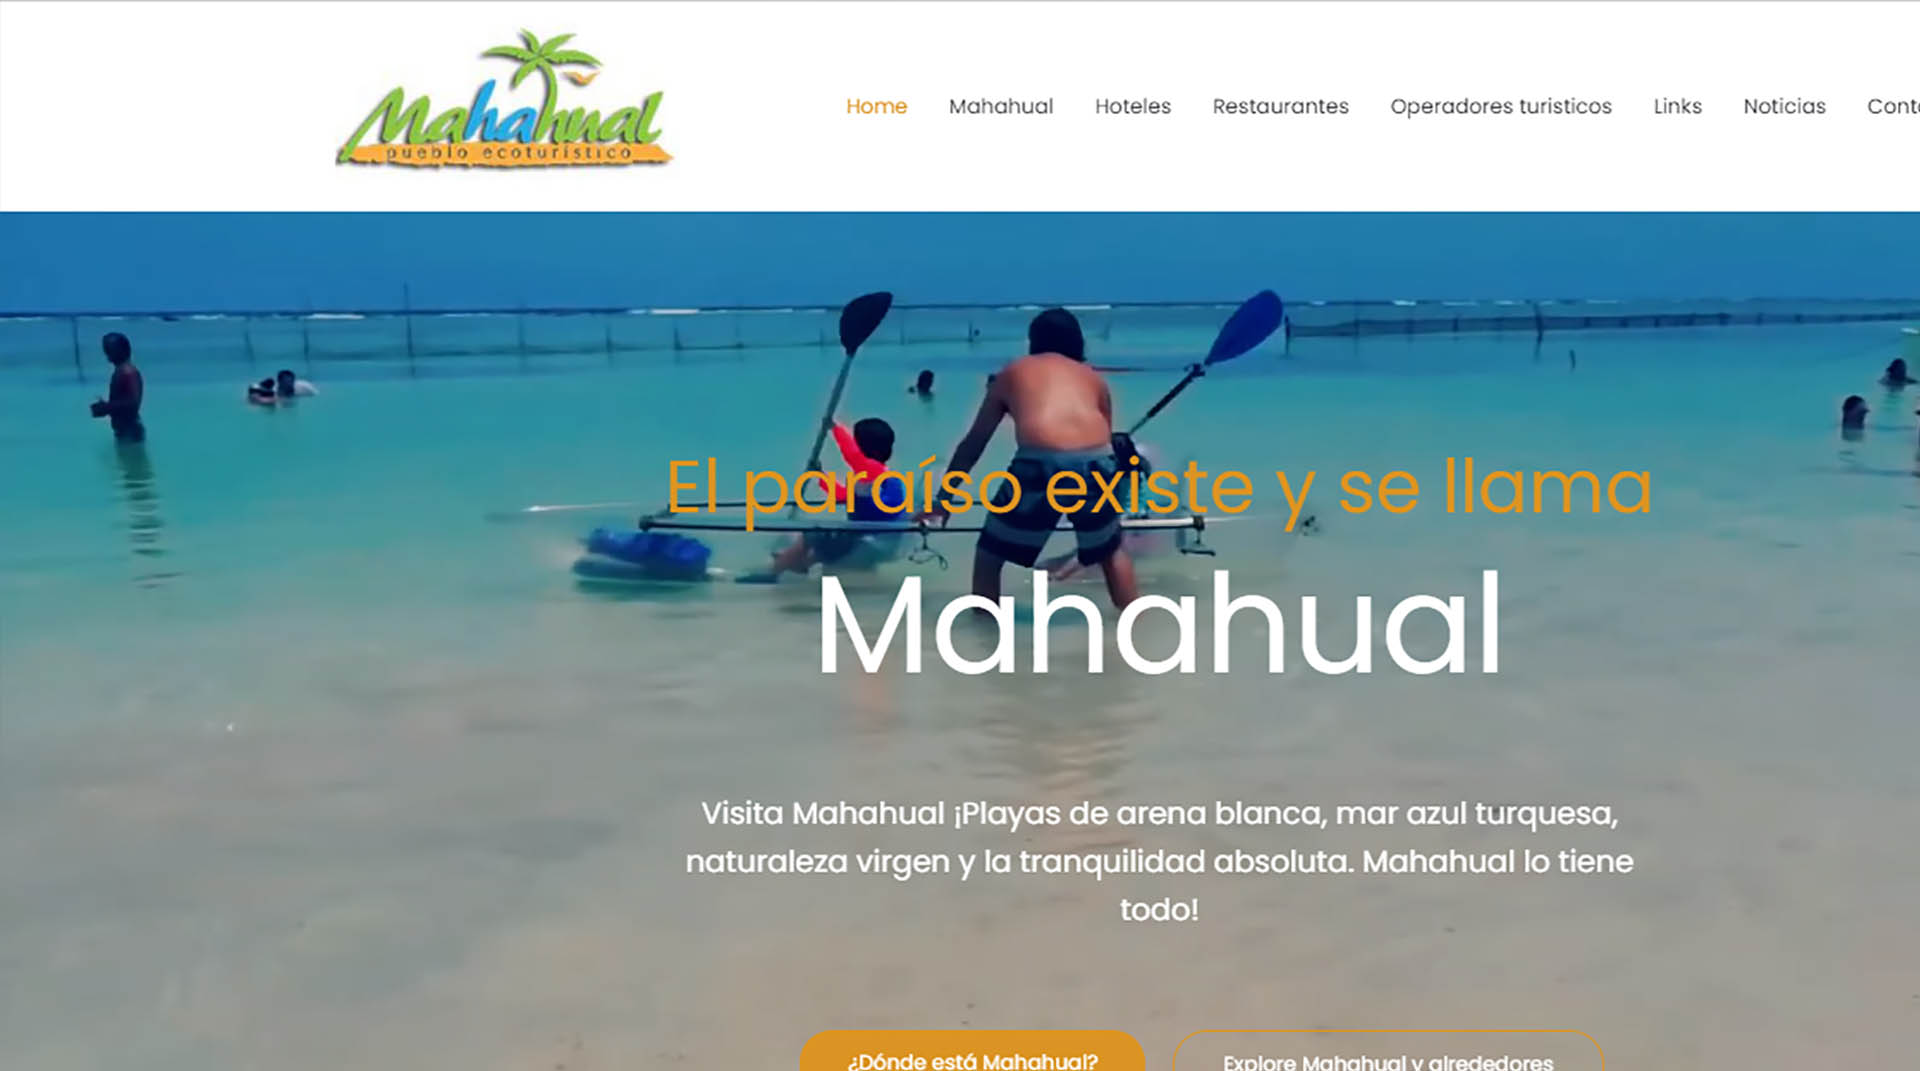 Website for Visit Mahahual